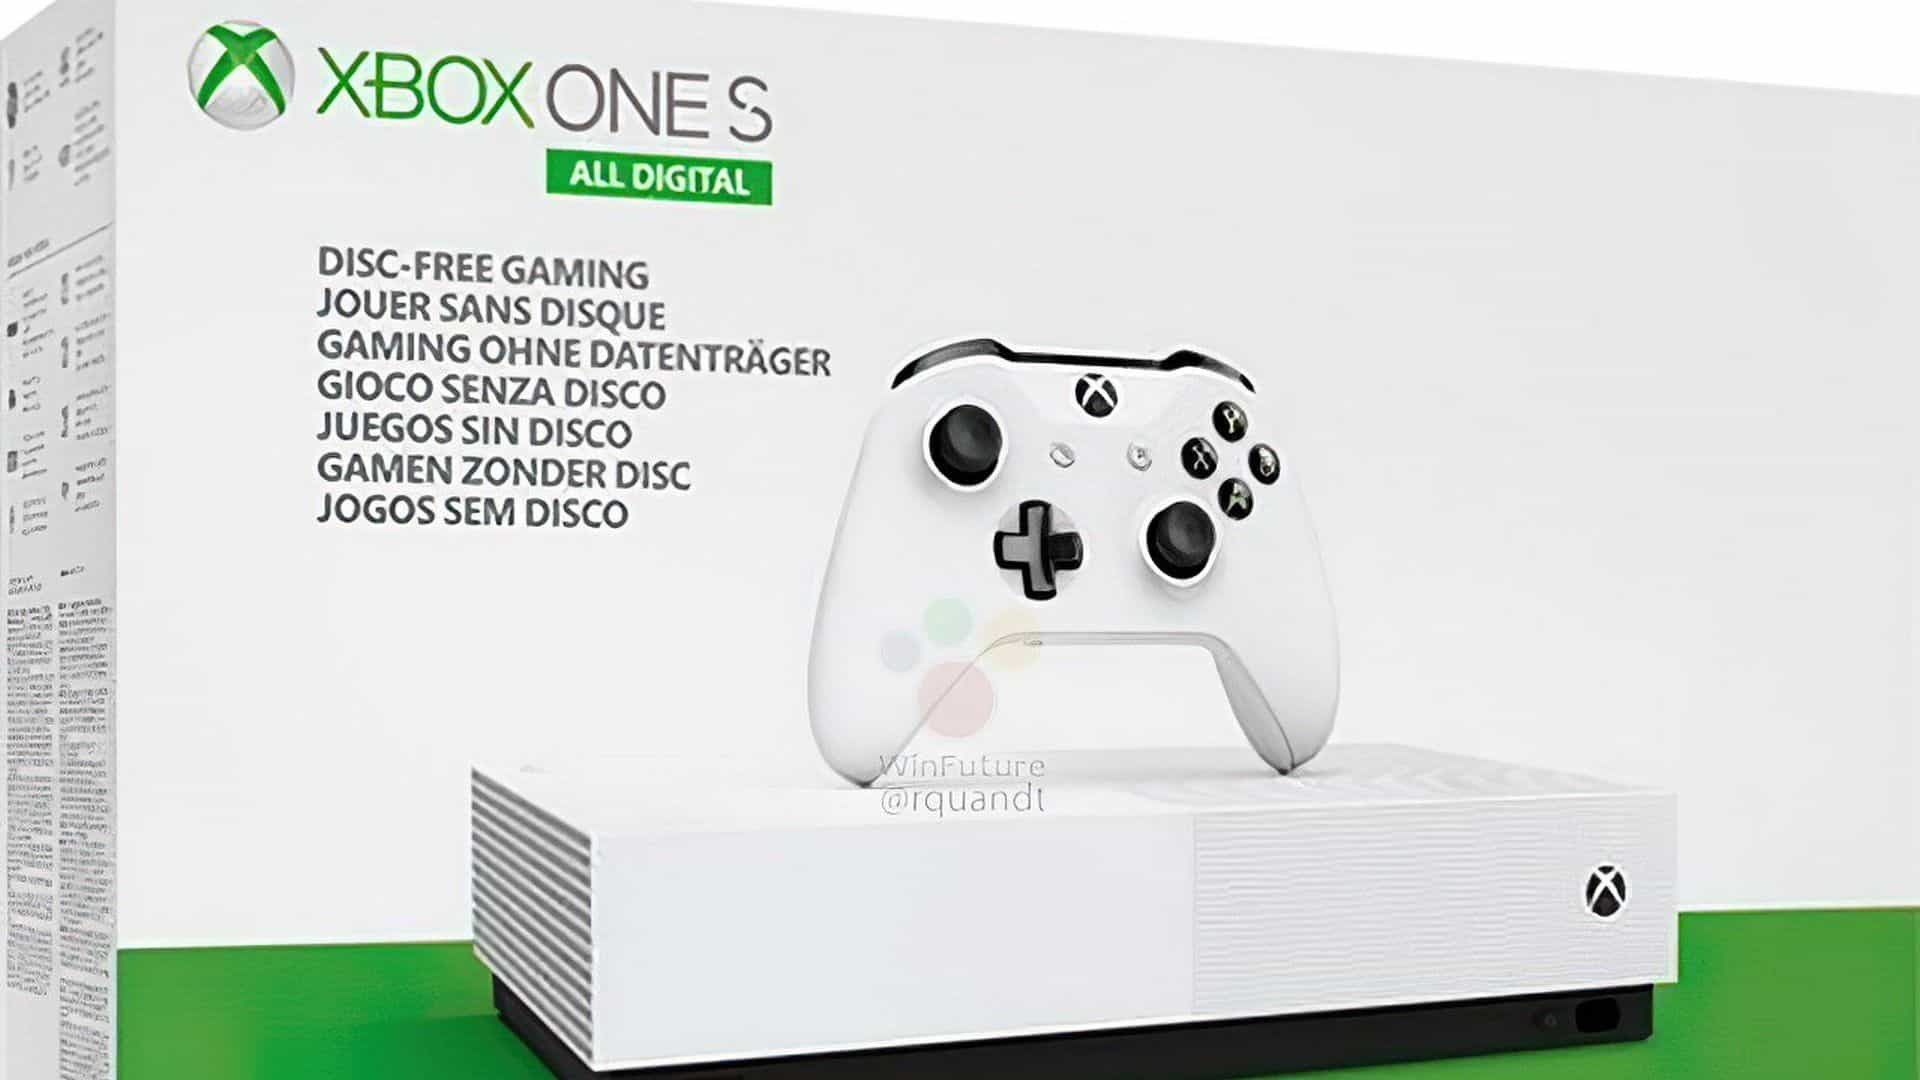 Xbox One All Digital